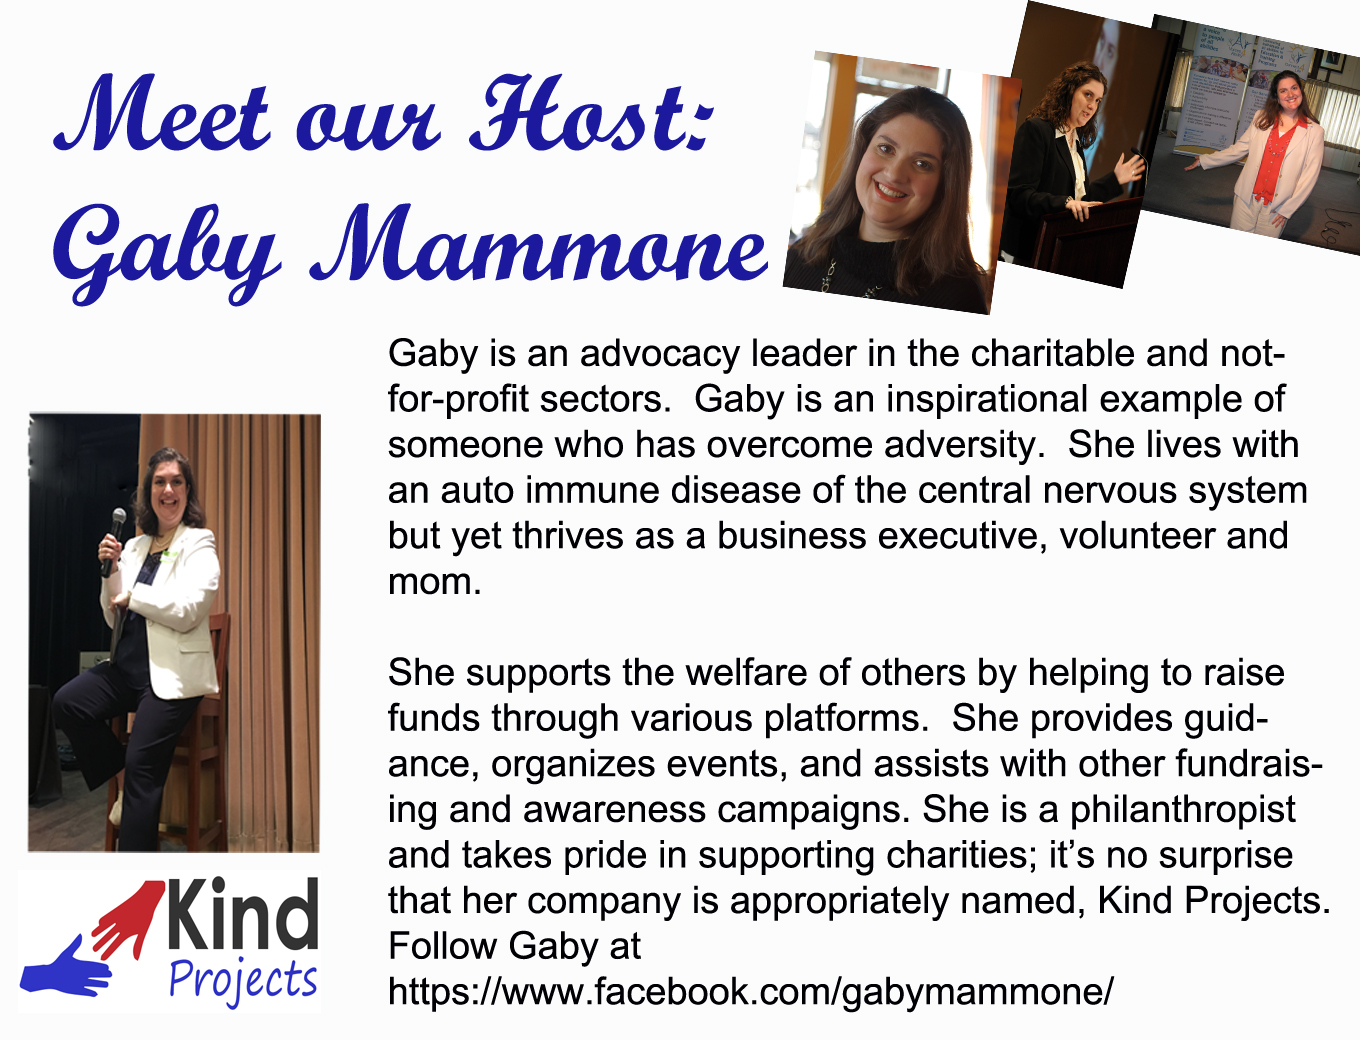 Gaby is an advocacy leader in the charitable and not-for-profit sectors.  Gaby is an inspirational example of someone who has overcome adversity.  She lives with an auto immune disease of the central nervous system but yet thrives as a business executive, volunteer and mom.She supports the welfare of others by helping to raise funds through various platforms.  She provides guidance, organizes events, and assists with other fundraising and awareness campaigns. She is a philanthropist and takes pride in supporting charities; it's no surprise that her company is appropriately named, Kind Projects.  Follow Gaby at https://www.facebook.com/gabymammone/